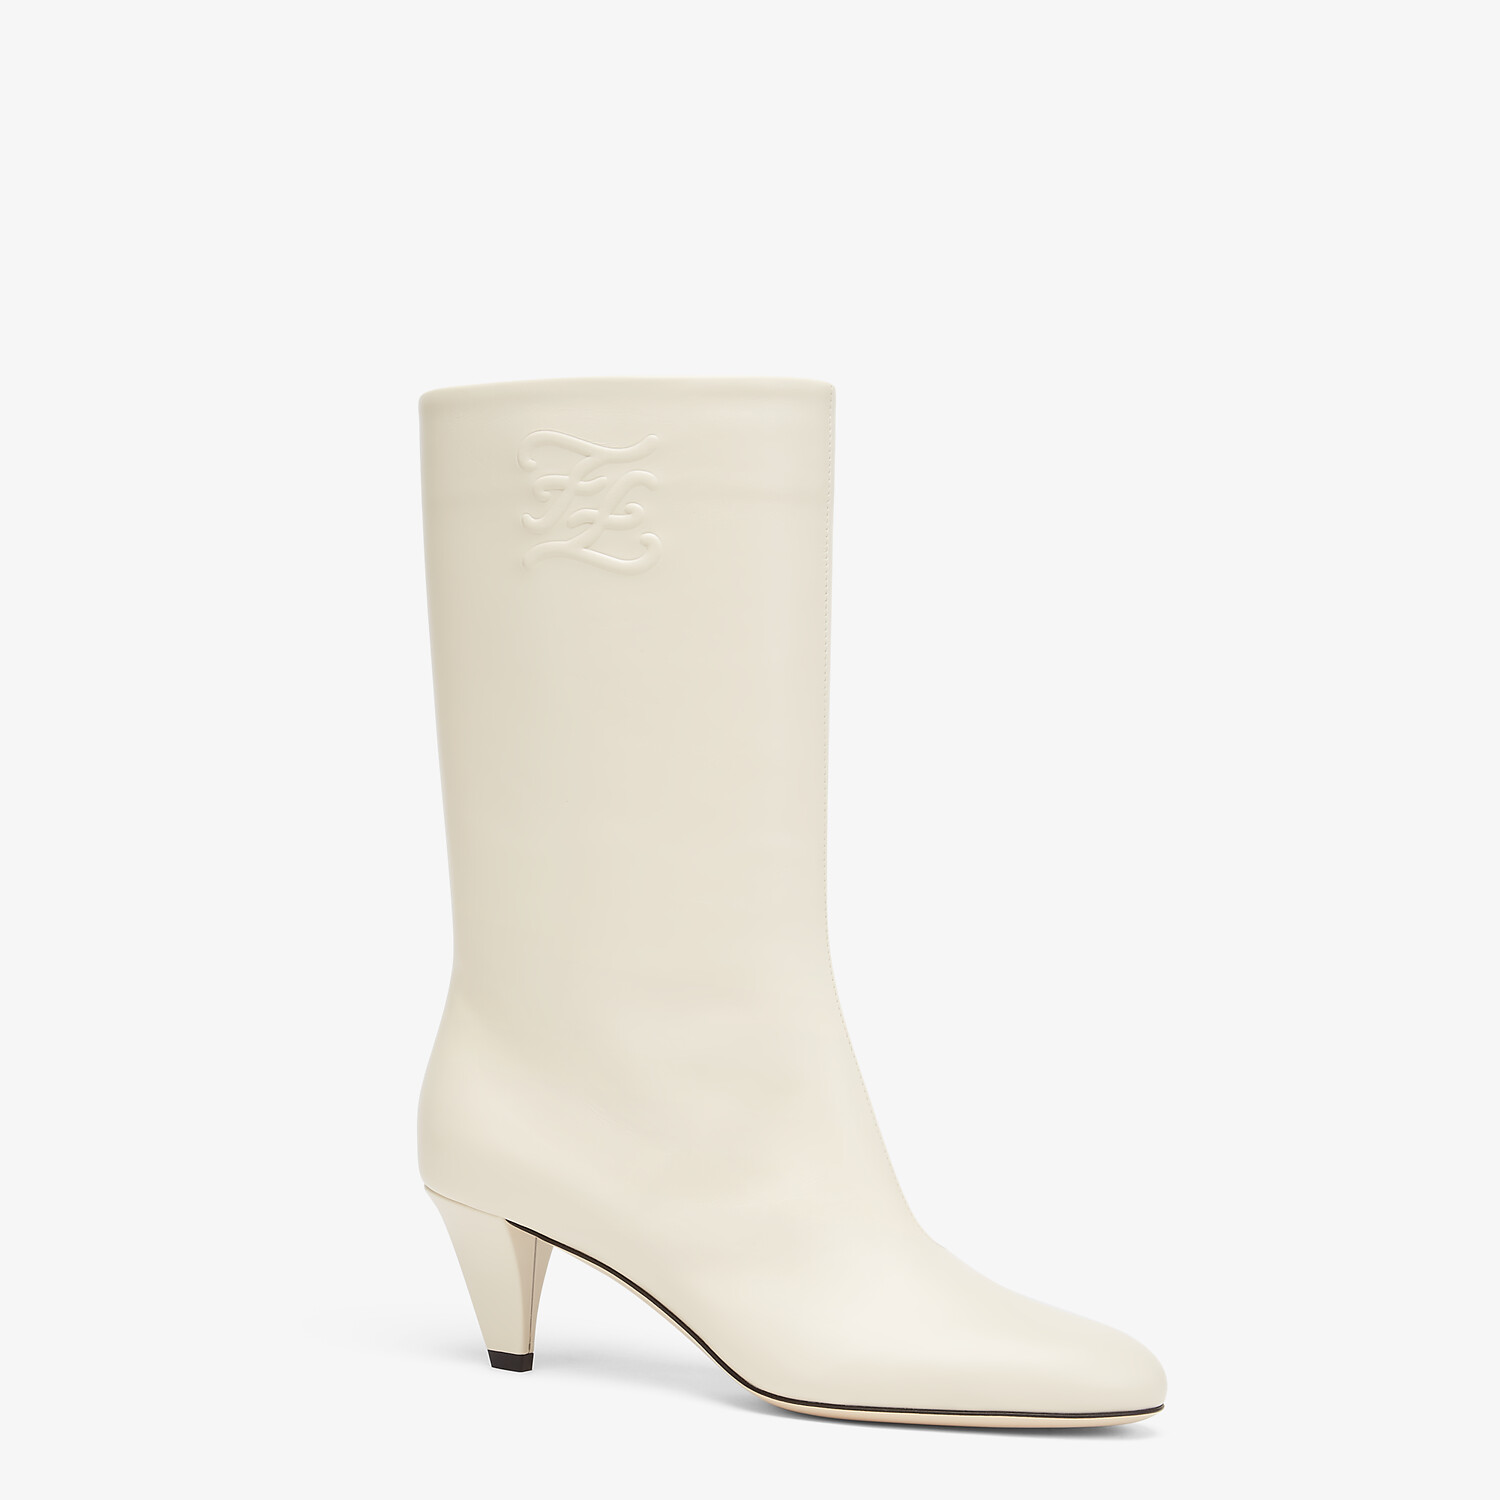 FENDI KARLIGRAPHY - White leather boots with medium heel - view 2 detail